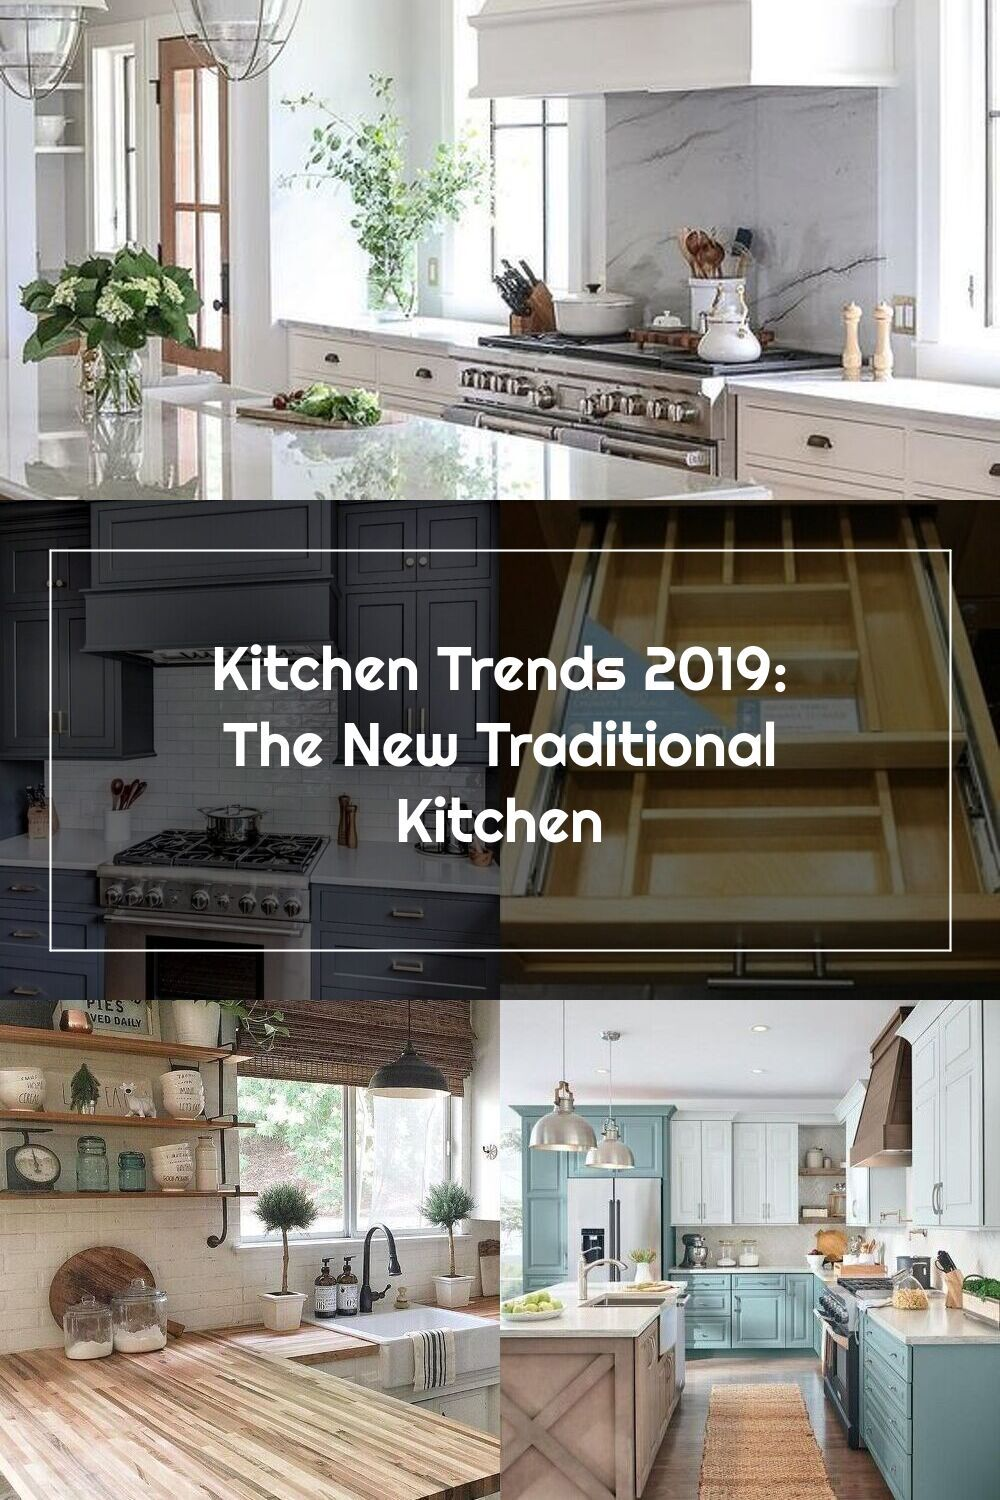 kitchen trends 2019 the new traditional kitchen in 2020 traditional kitchen all white on kitchen decor trends id=29437